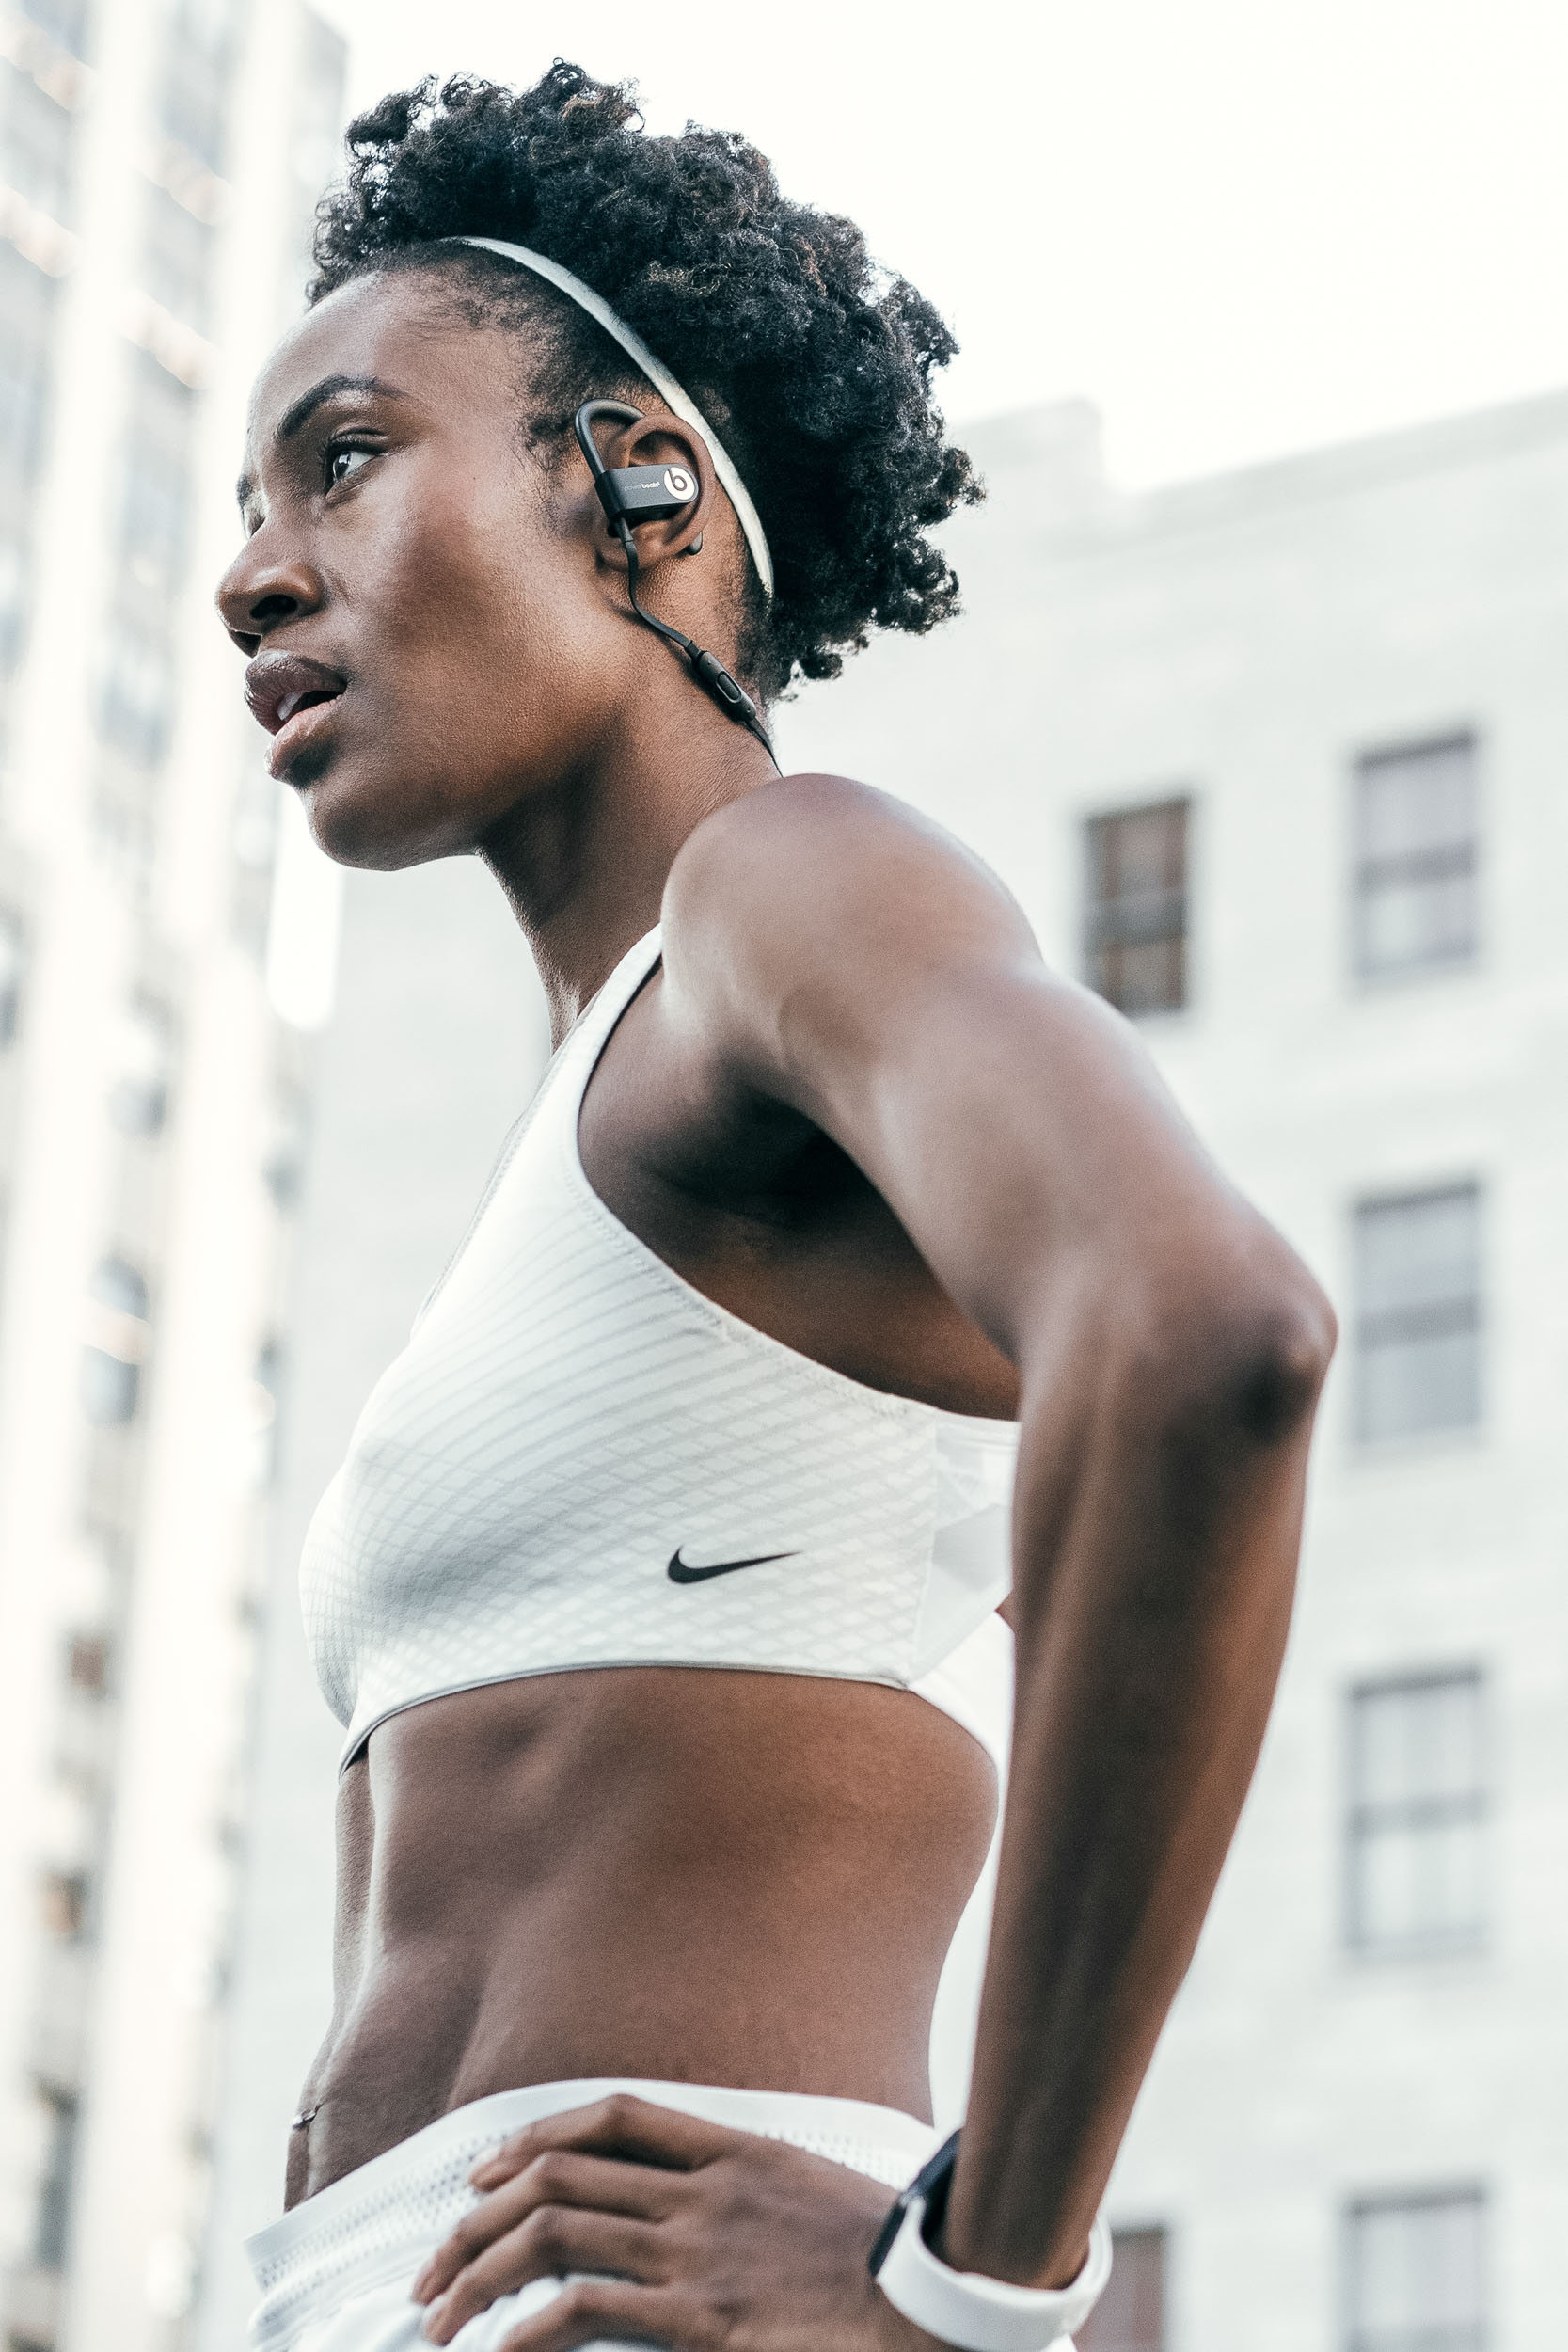 Female athlete in white Nike sports bra and shorts stands with hands on hips and looks into the distance